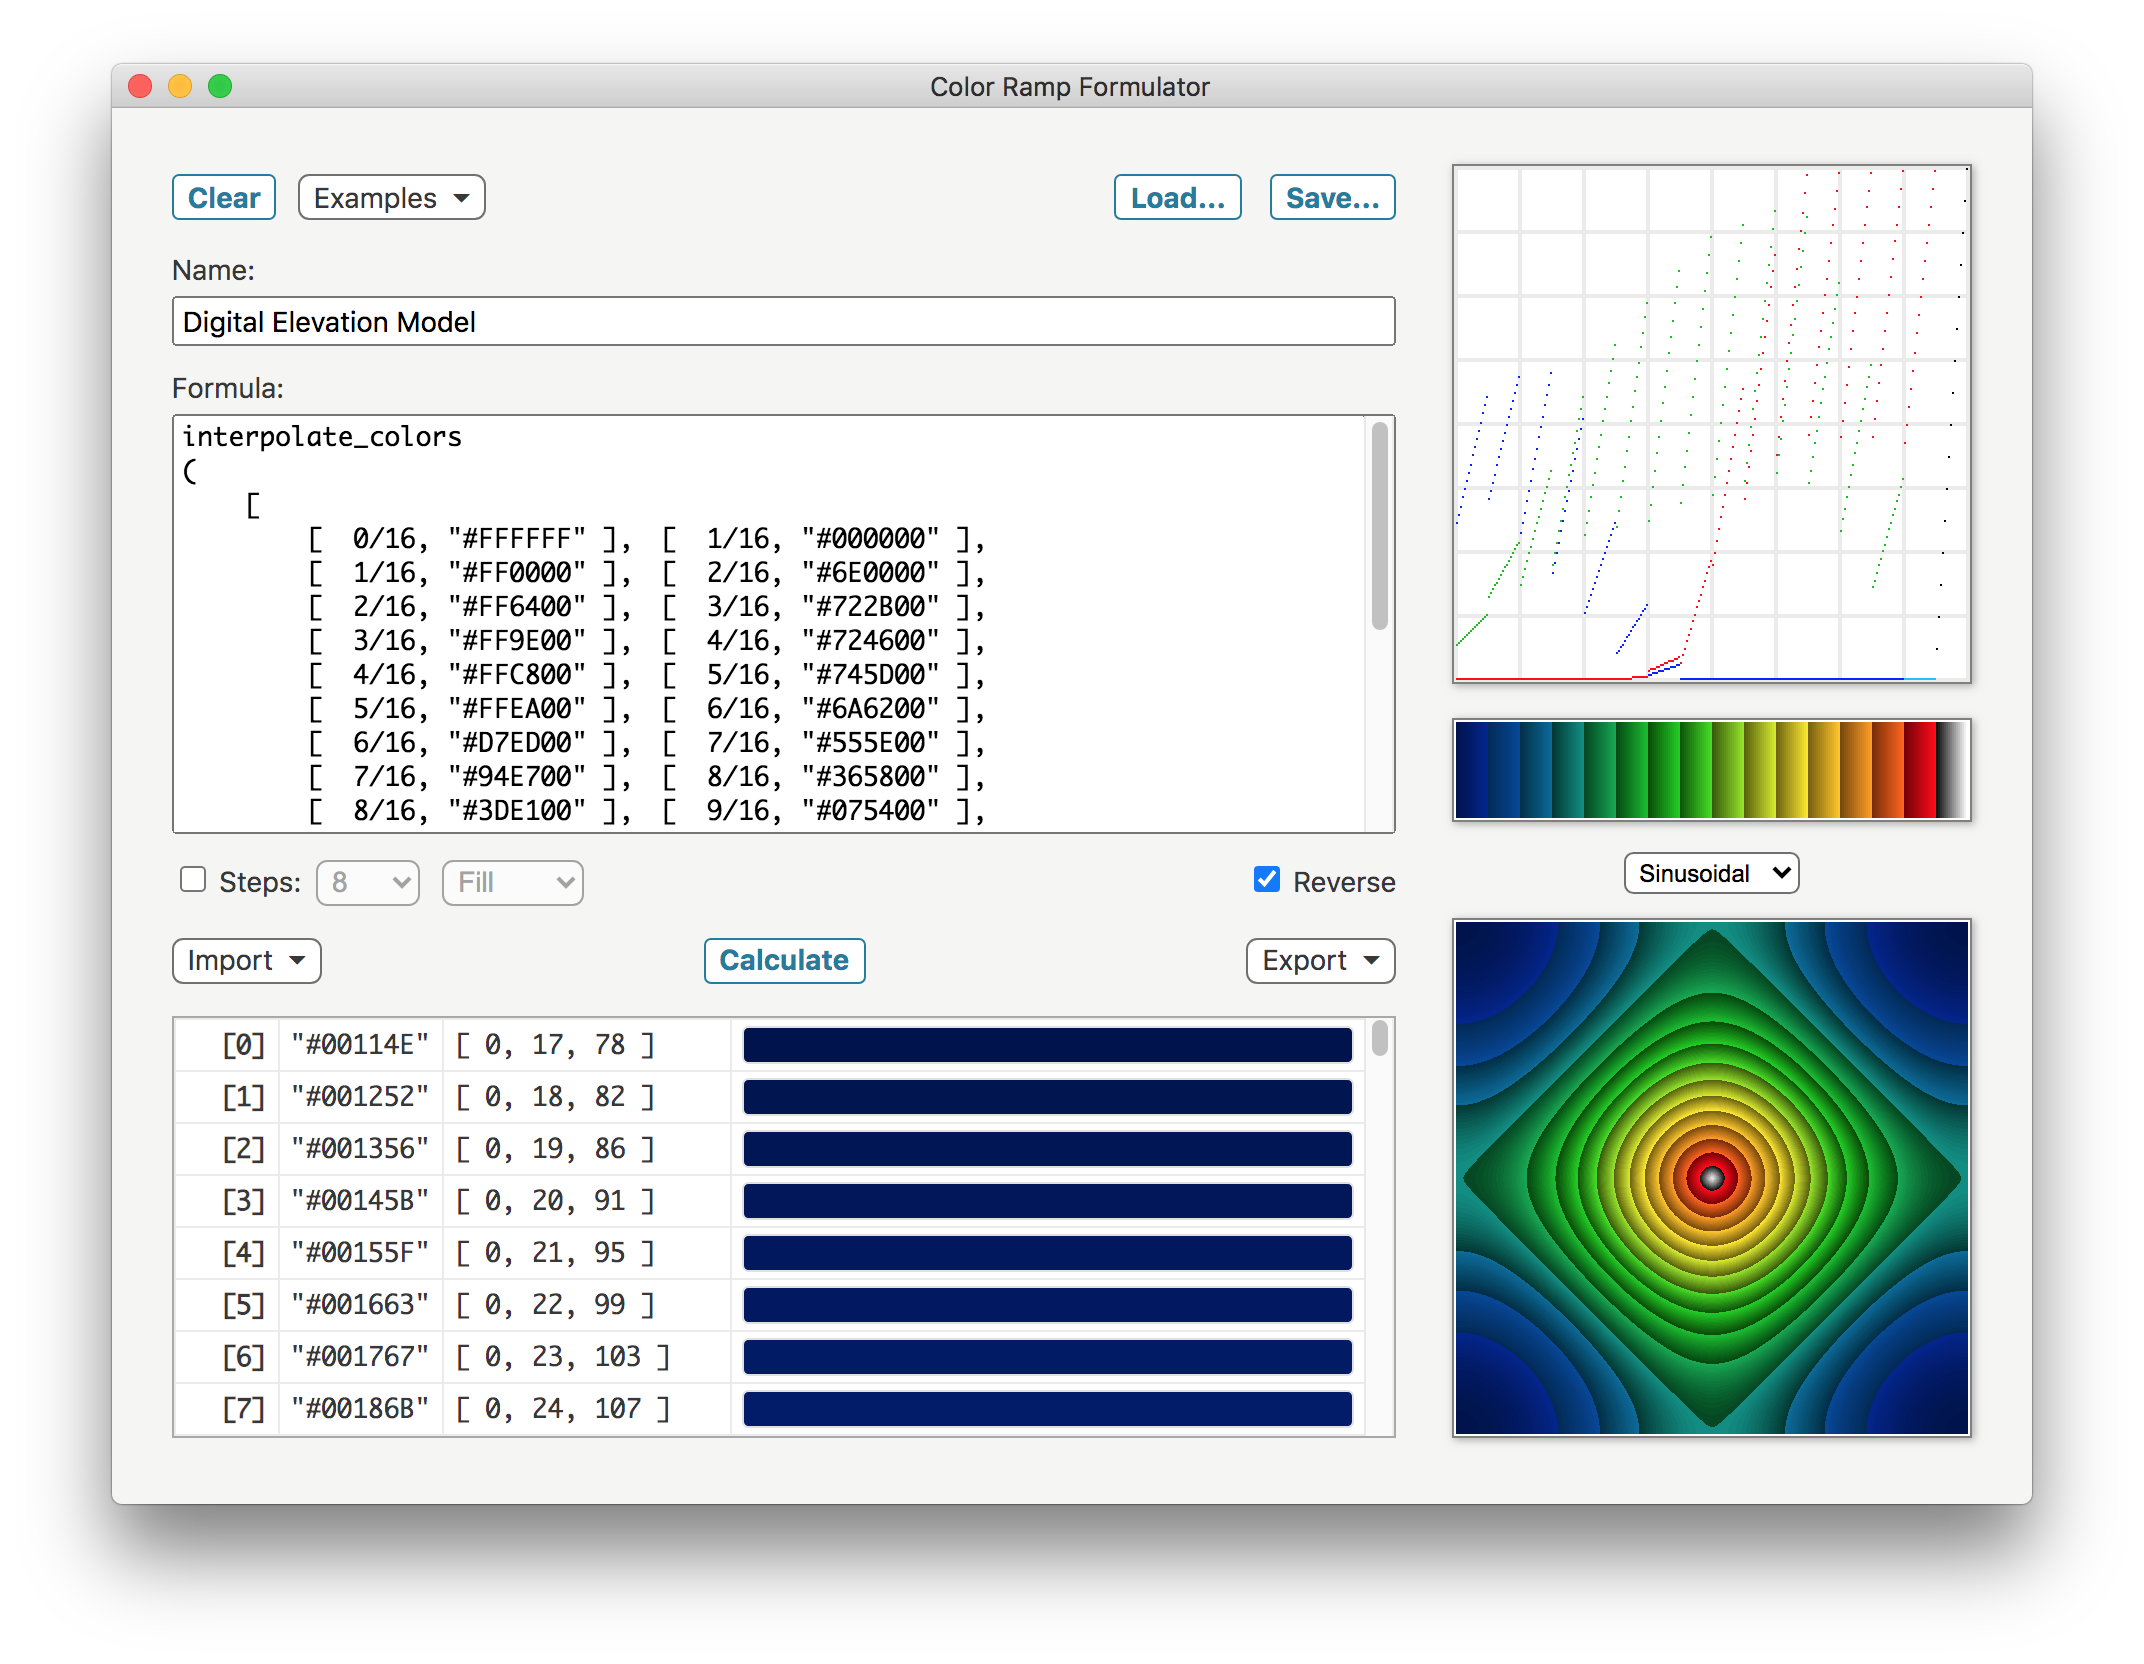 Color Ramp Formulator (Sinusoidal) screenshot